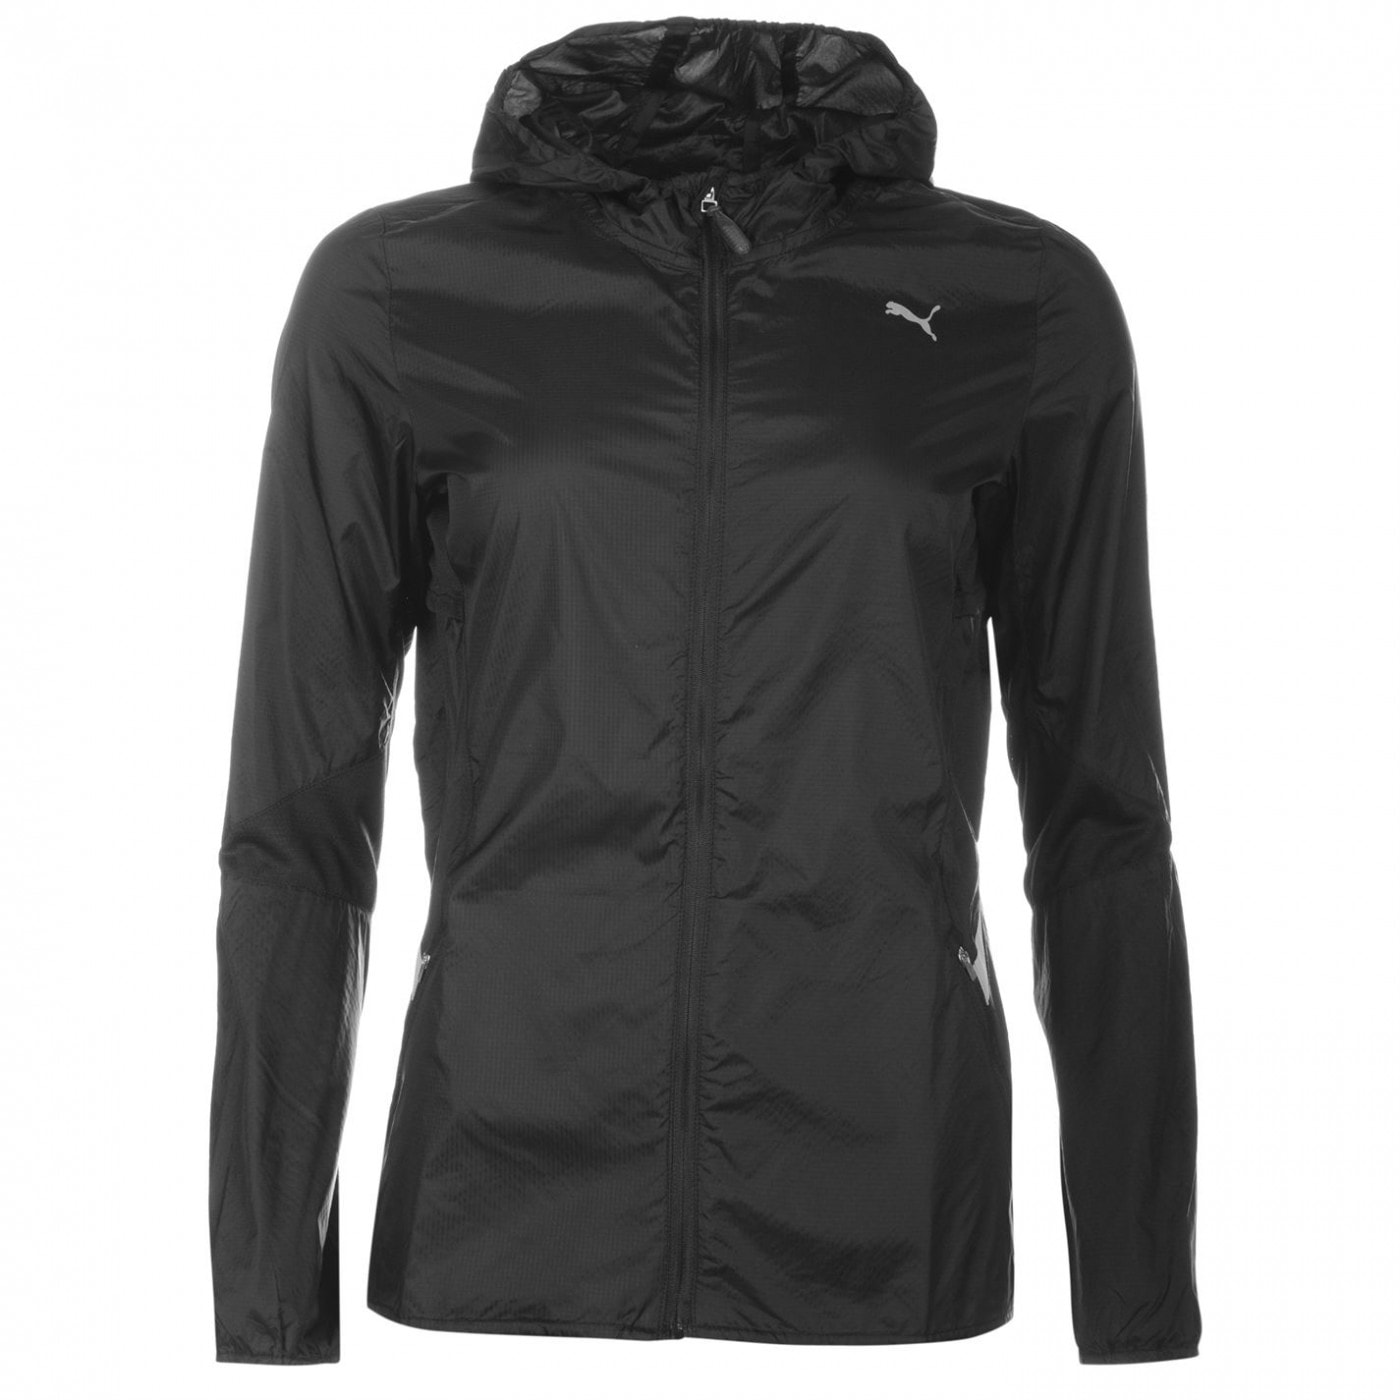 Puma Hooded Lightweight Jacket Wopánské